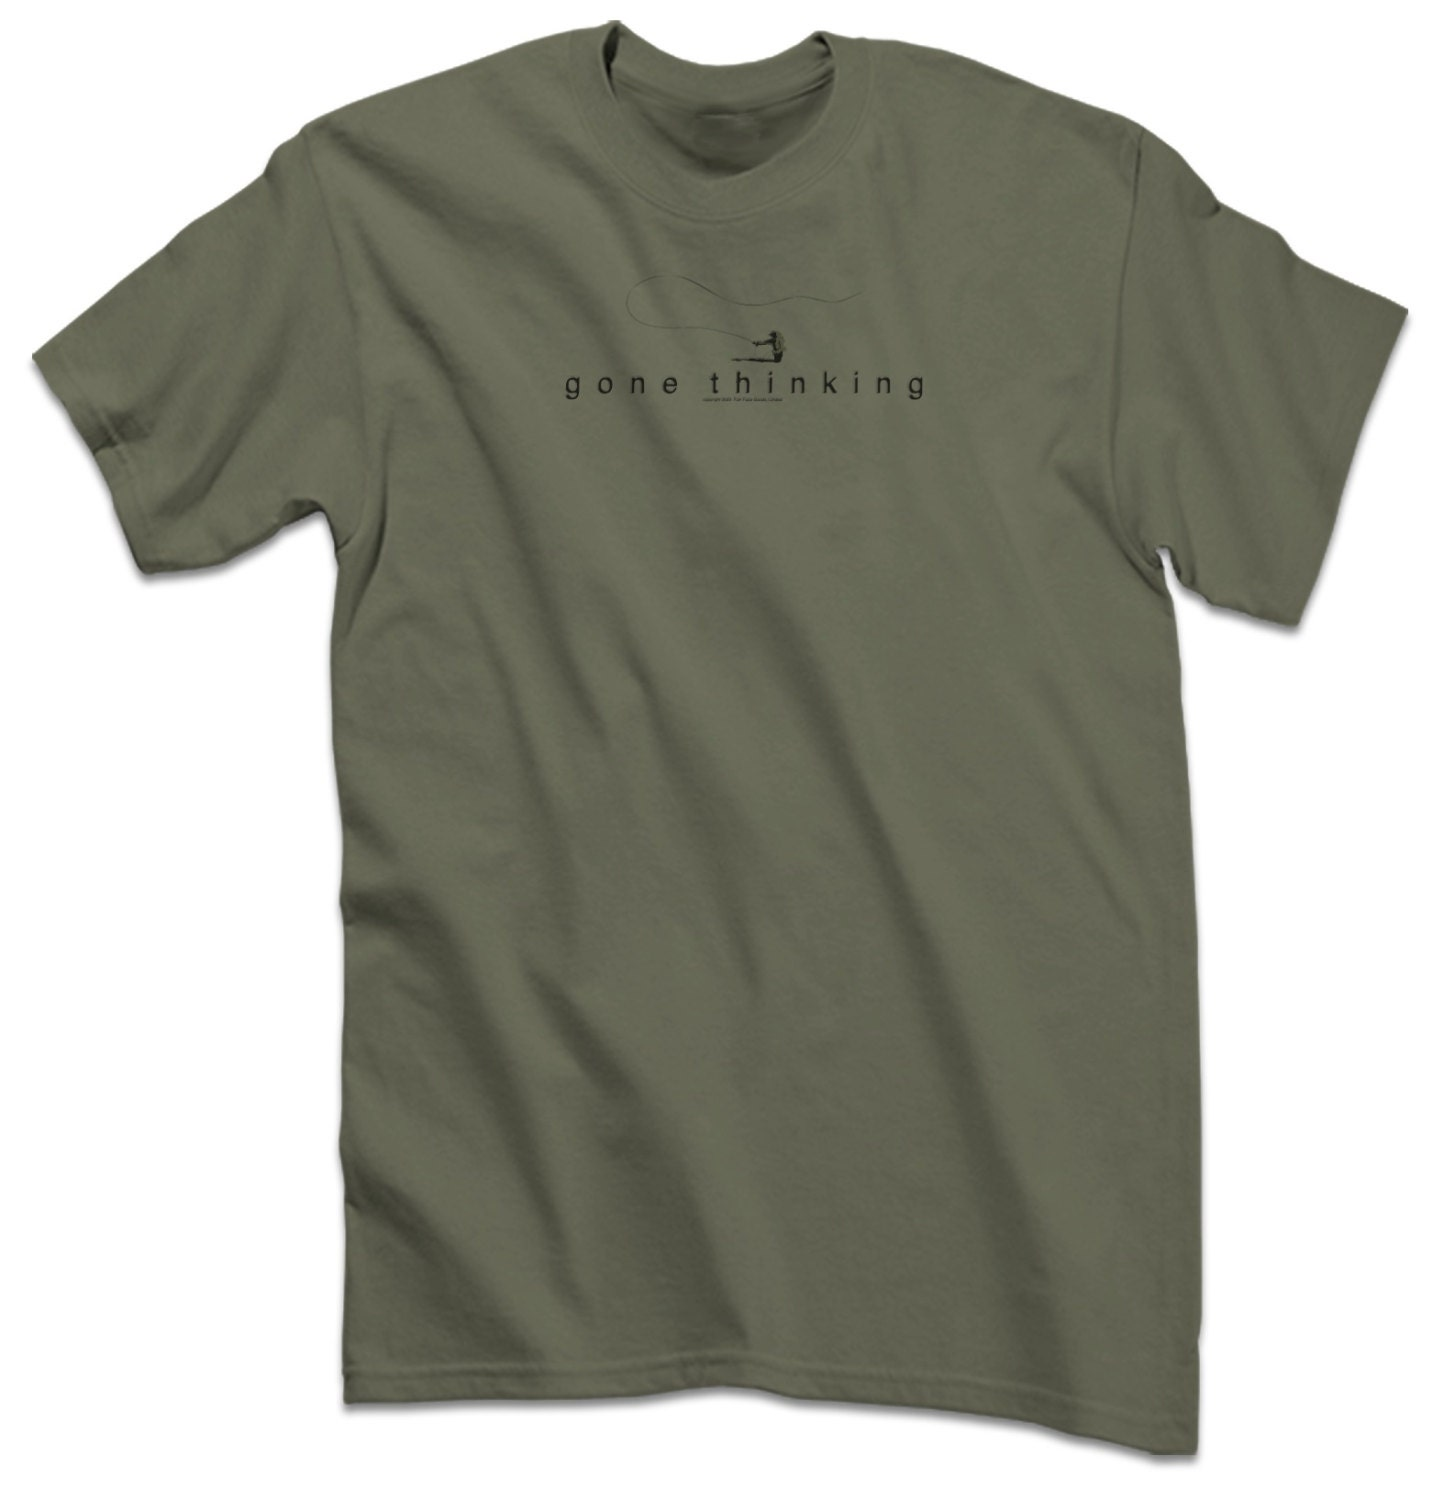 Fly fishing trout shirt cool fly fishing apparel gone for Fly fishing clothing